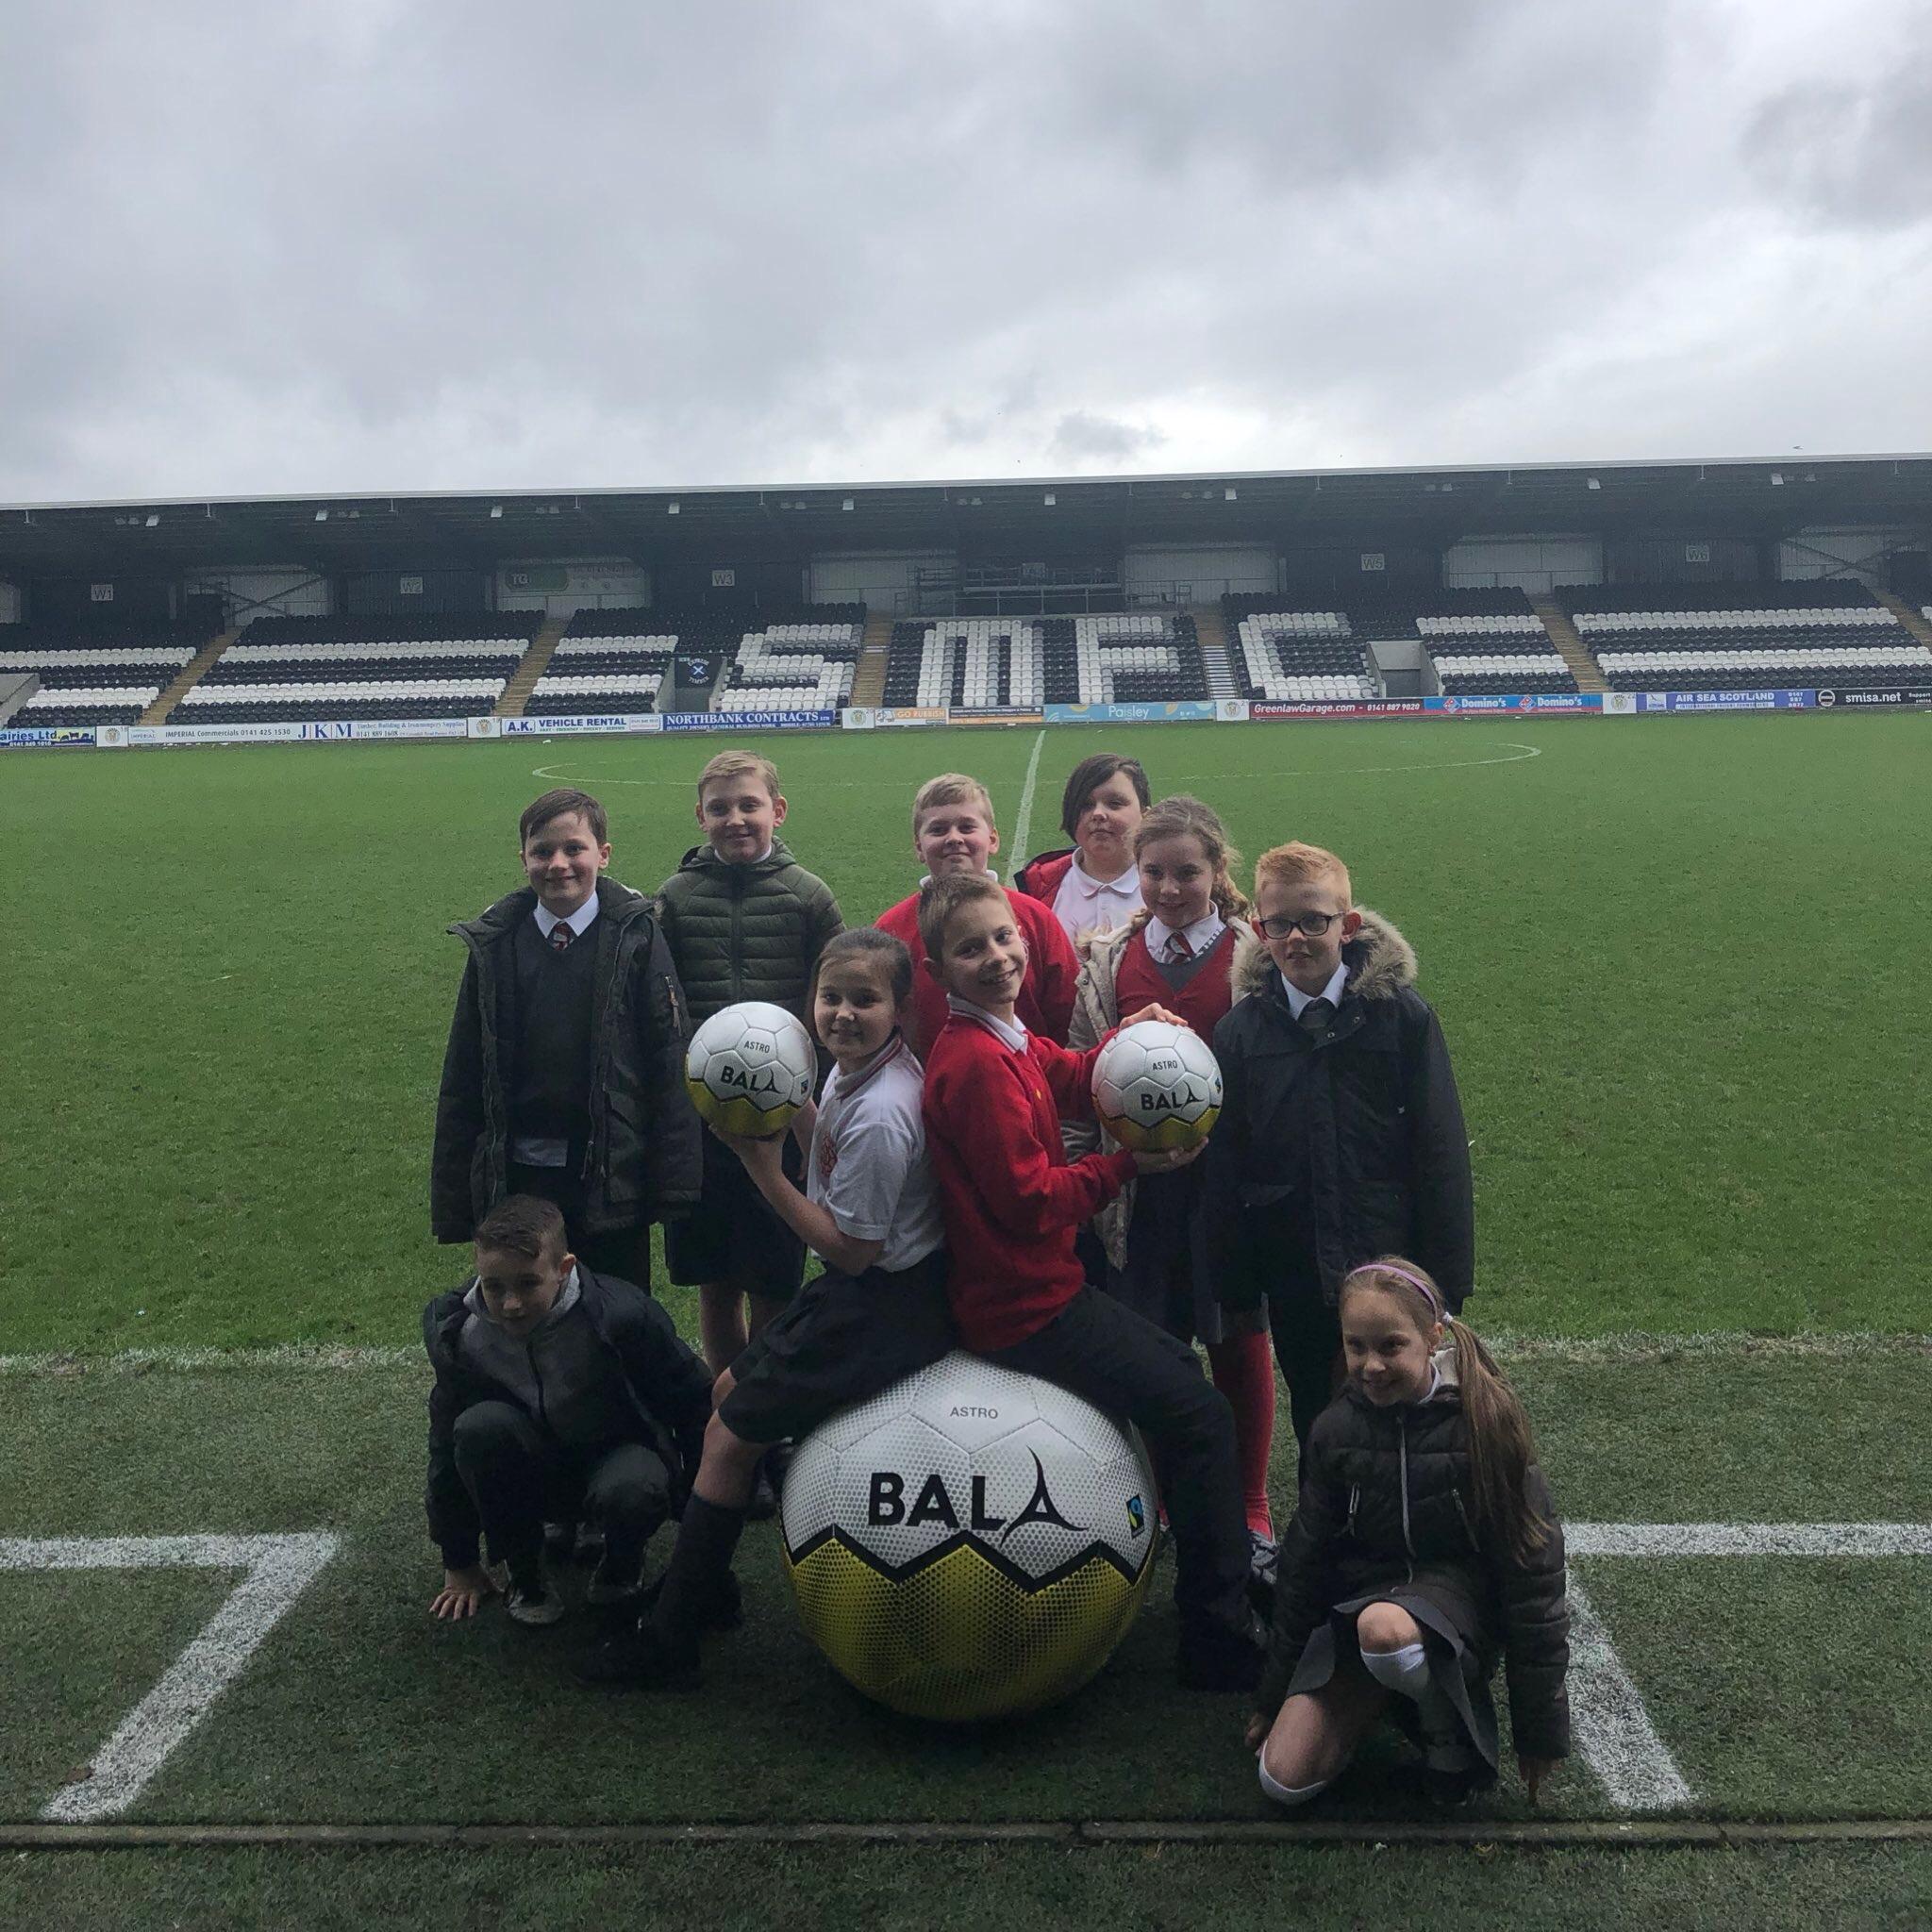 10 children pose in football grounds, two holding a fair trade ball each and sitting on top of a giant ball